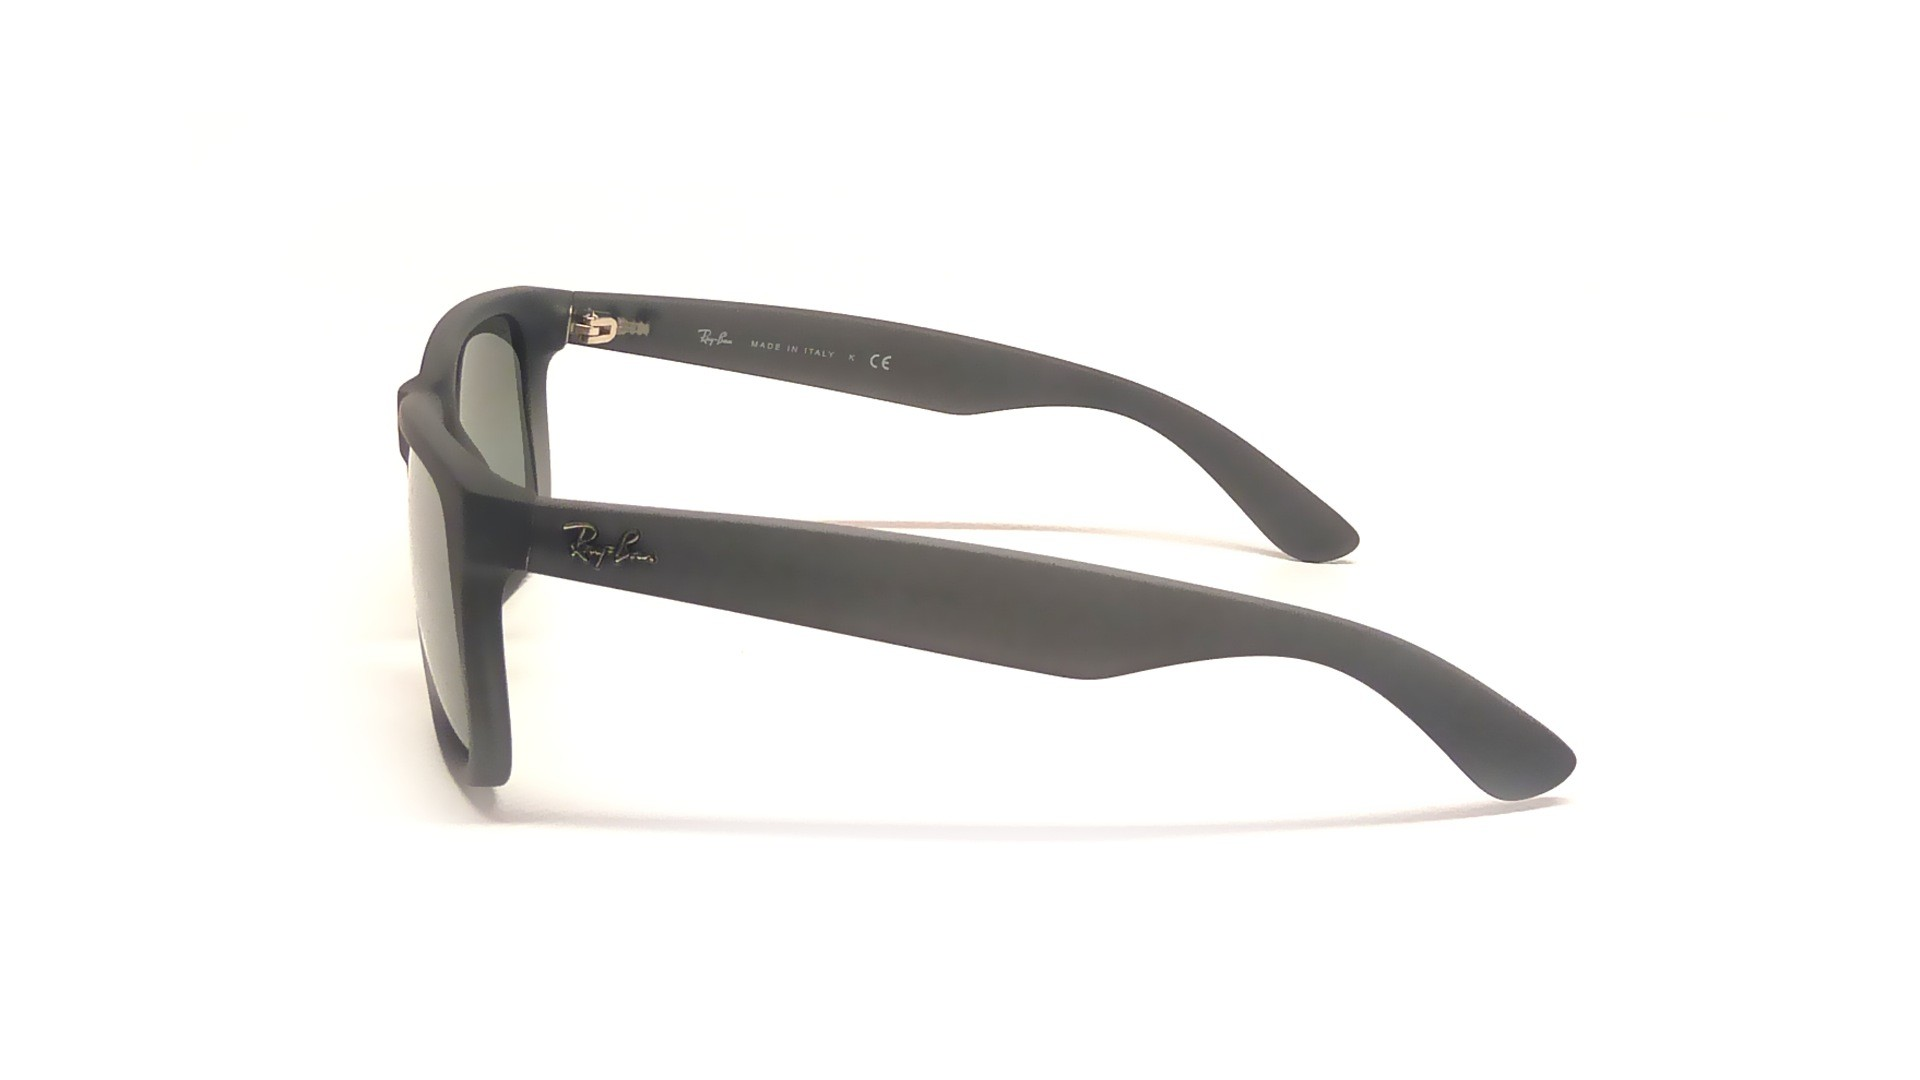 f9d47c272 ... Picture 2 of 3; Picture 3 of 3. Ray-Ban RB4165 852/88 54-16 Sunglasses